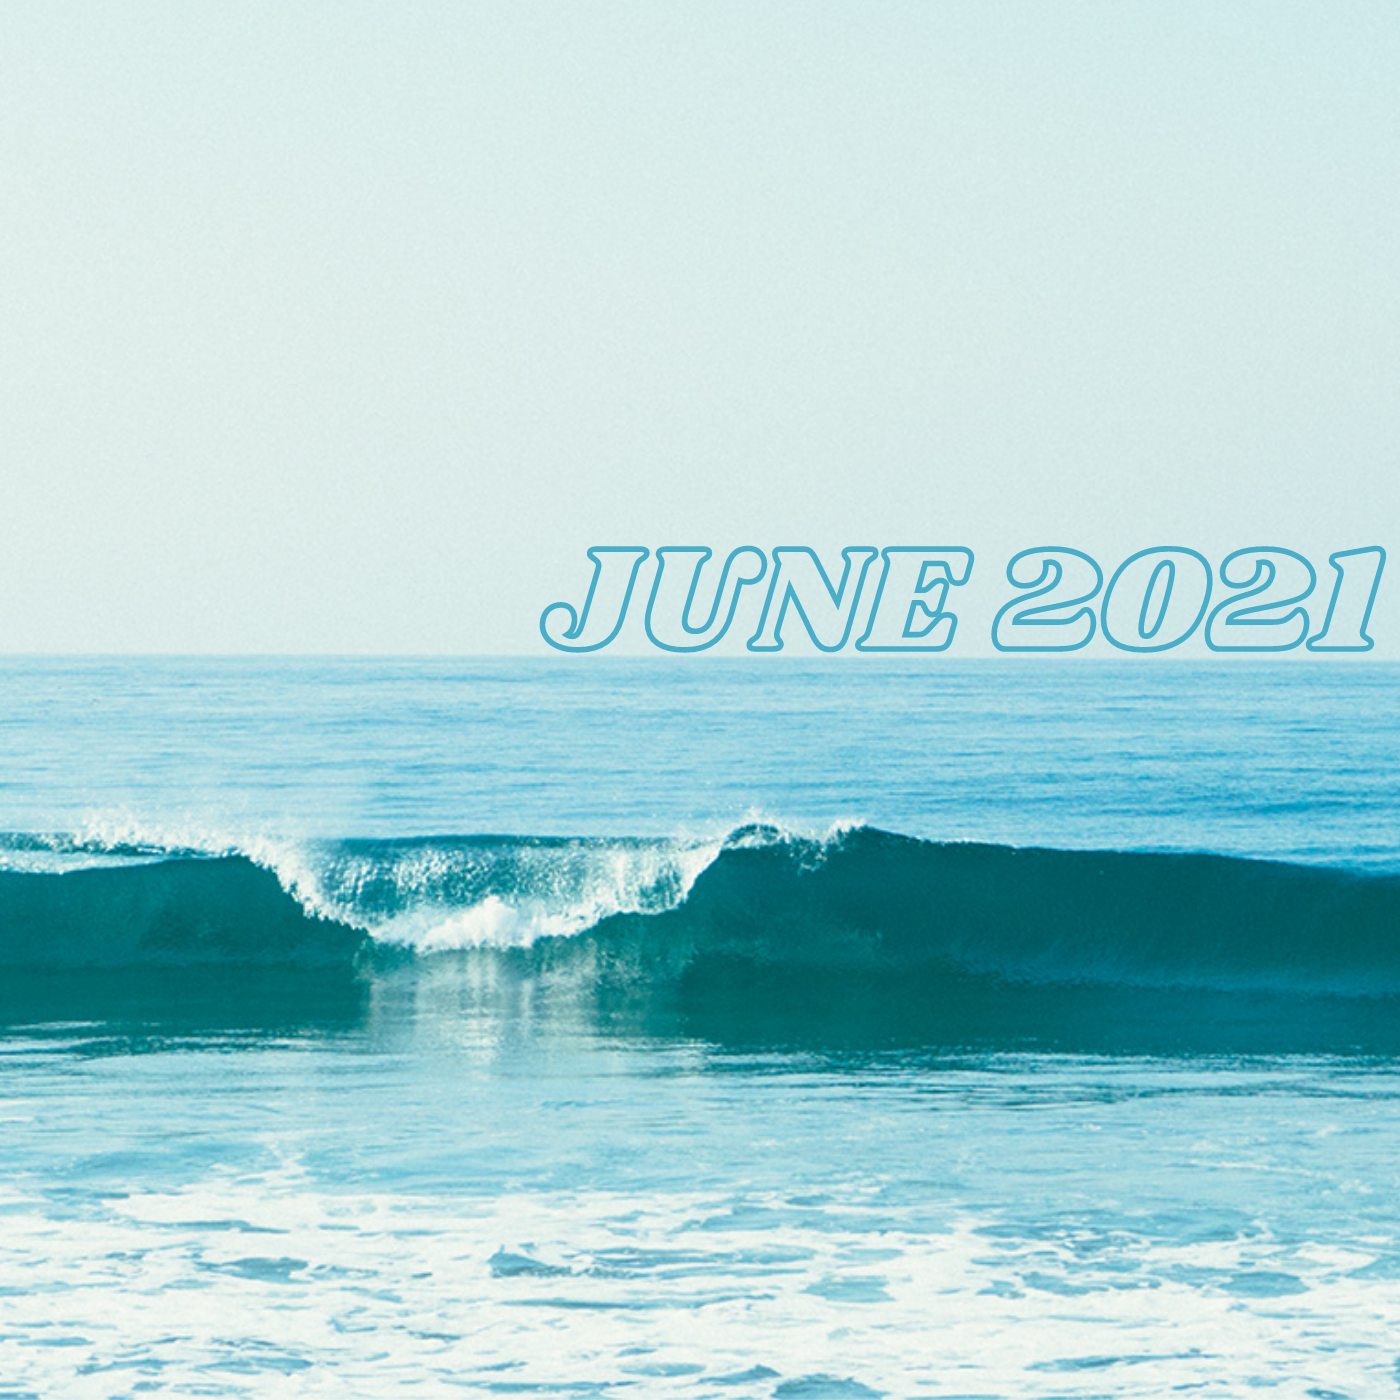 a square image of a small wave cresting in blue and teal tones reading june 2021